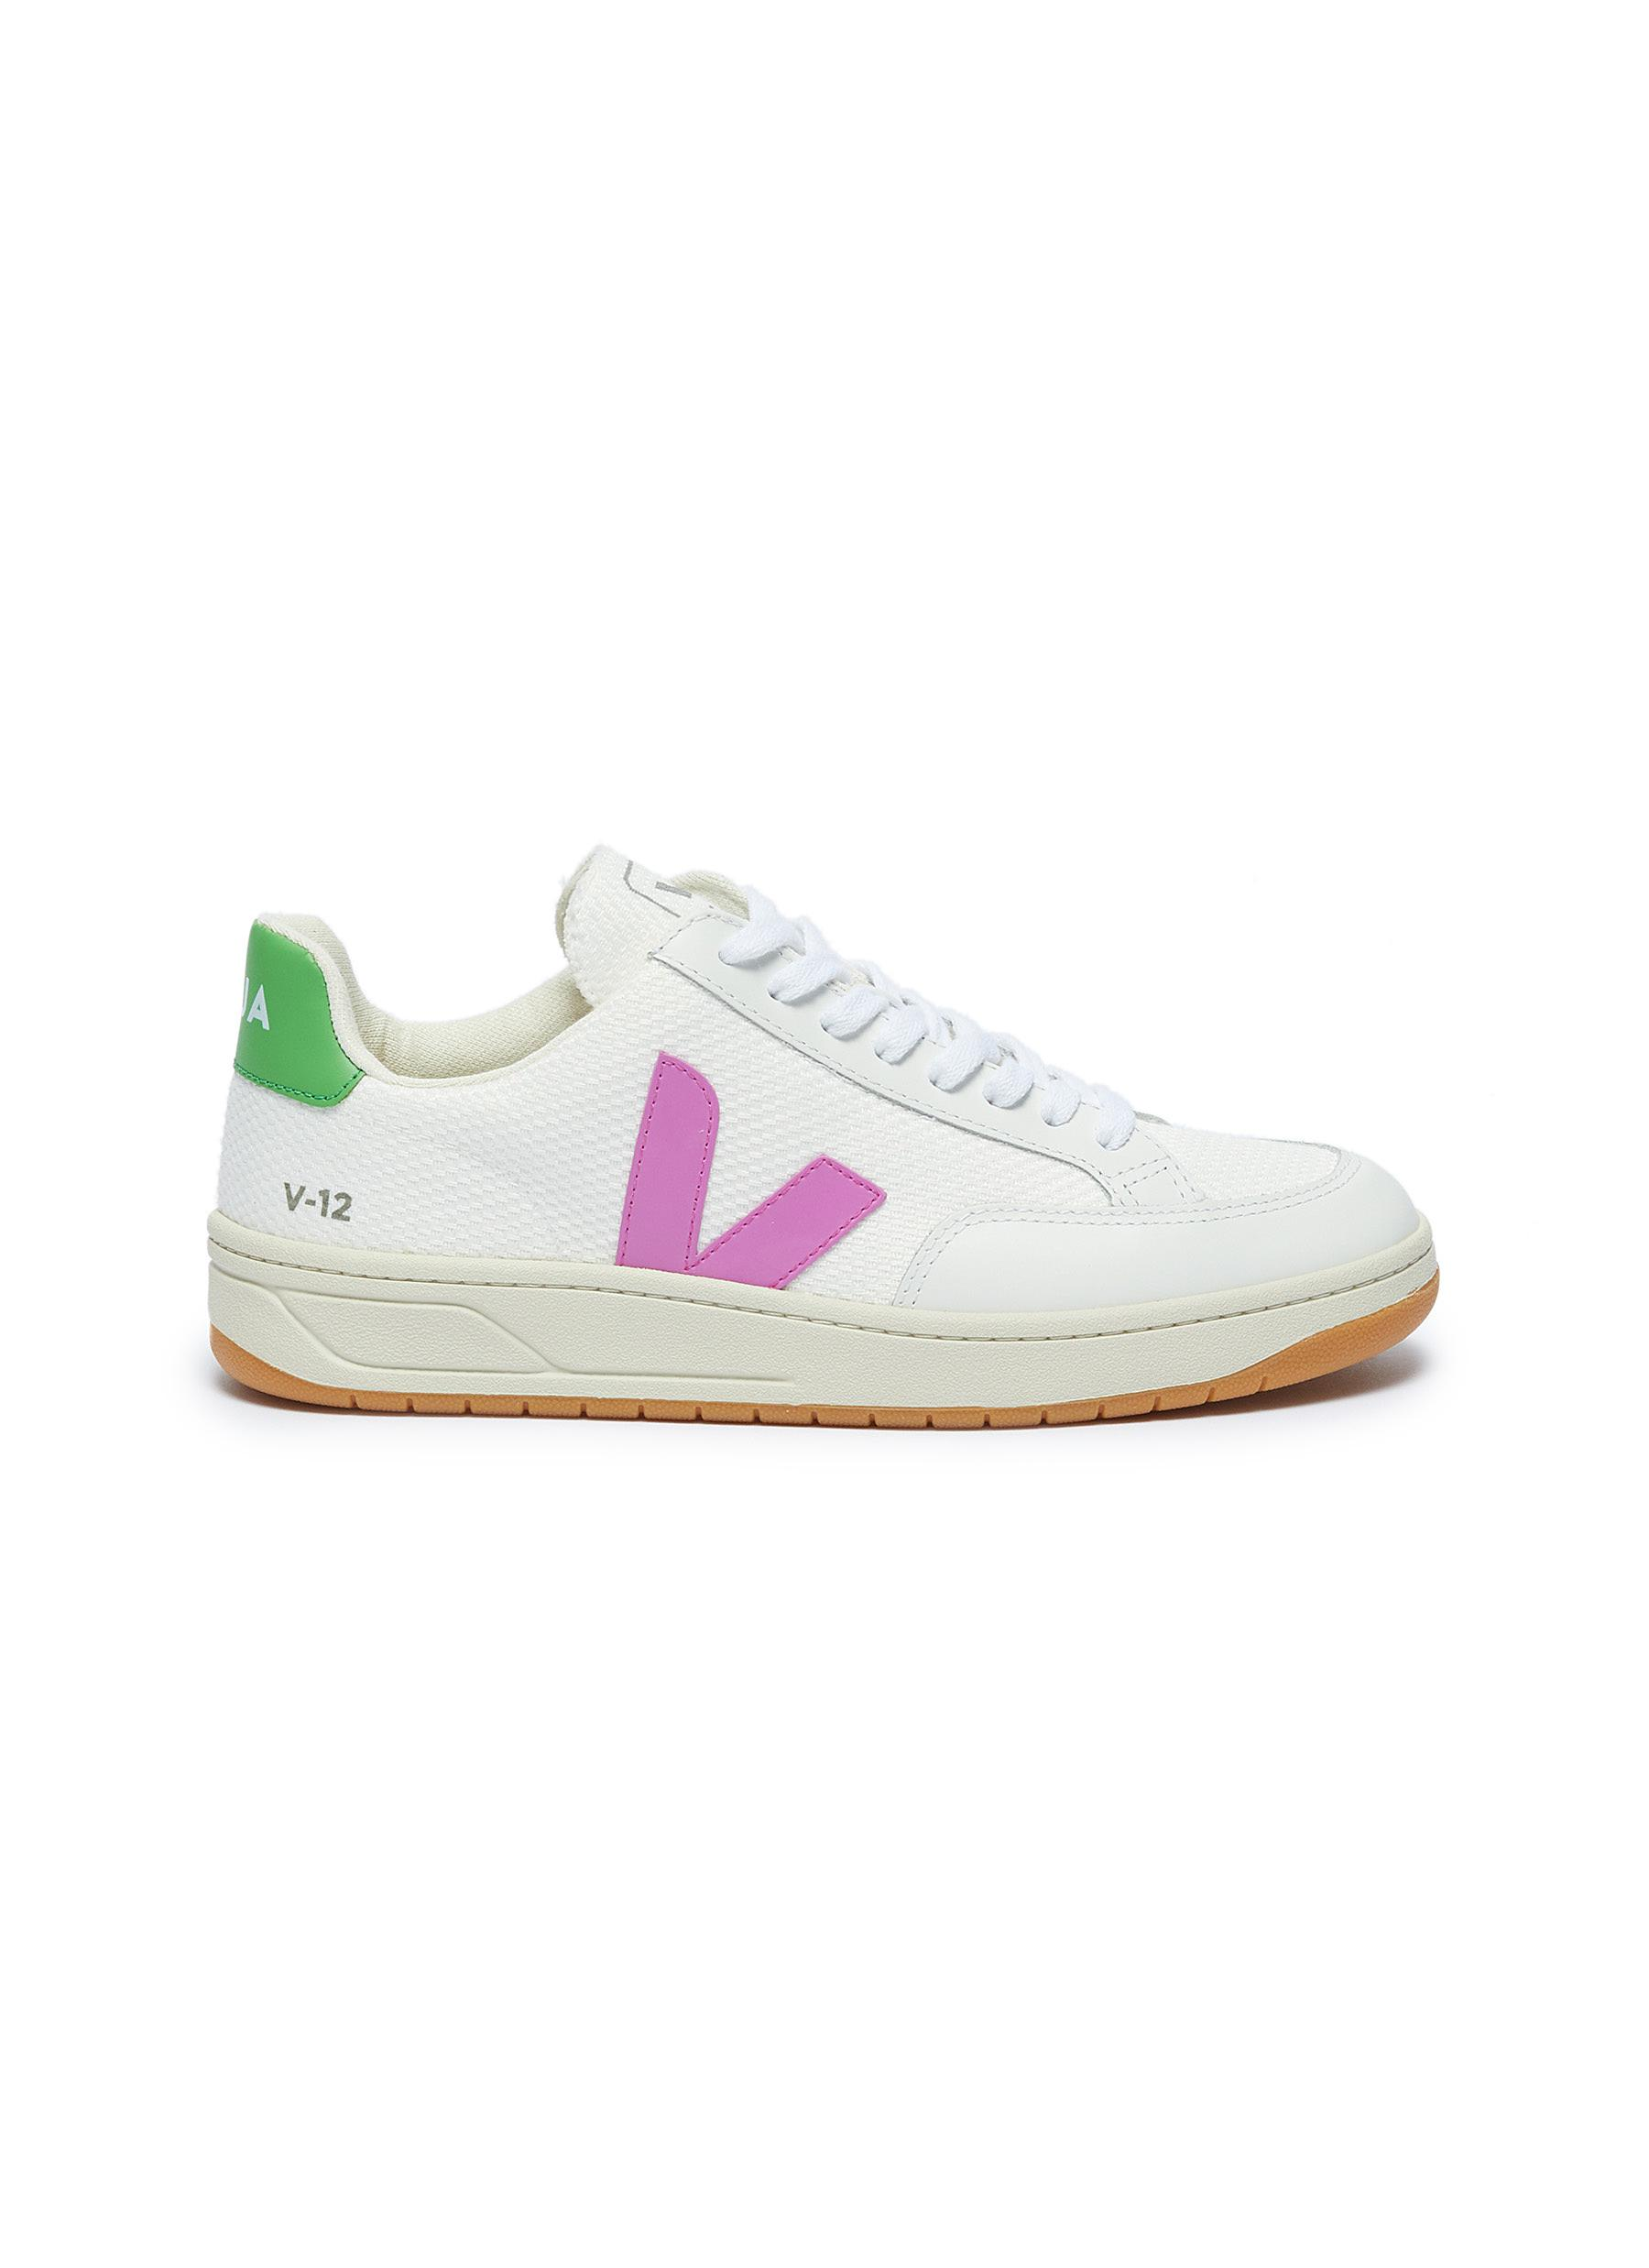 V-12 leather panel B-mesh sneakers by Veja